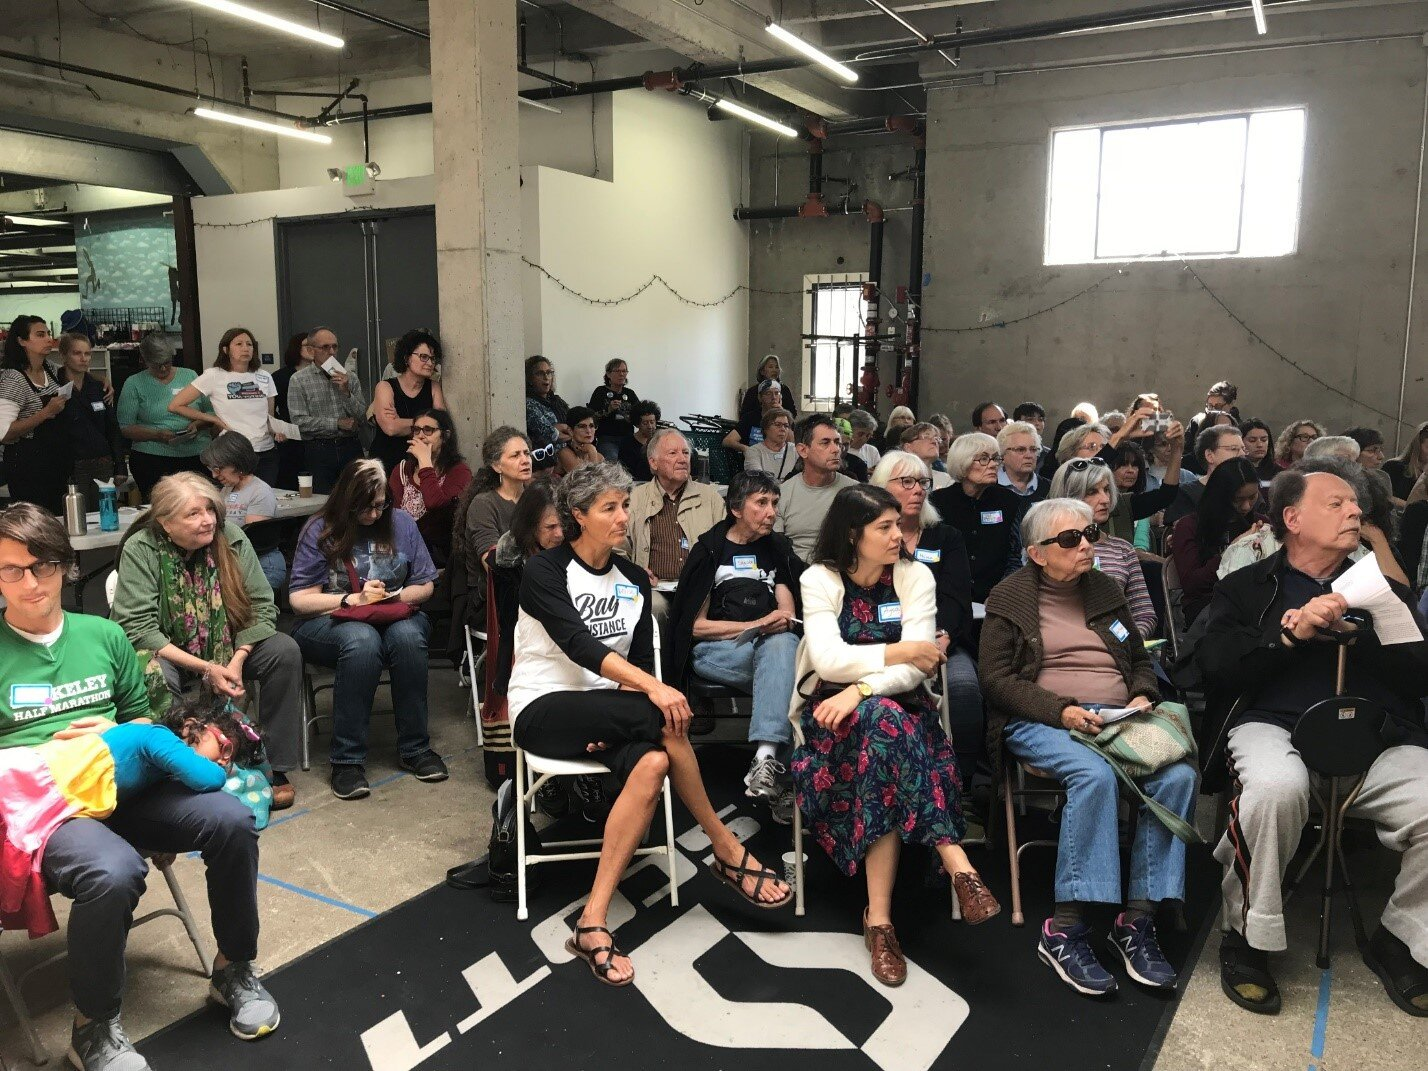 Standing-room only meeting of Indivisible East Bay